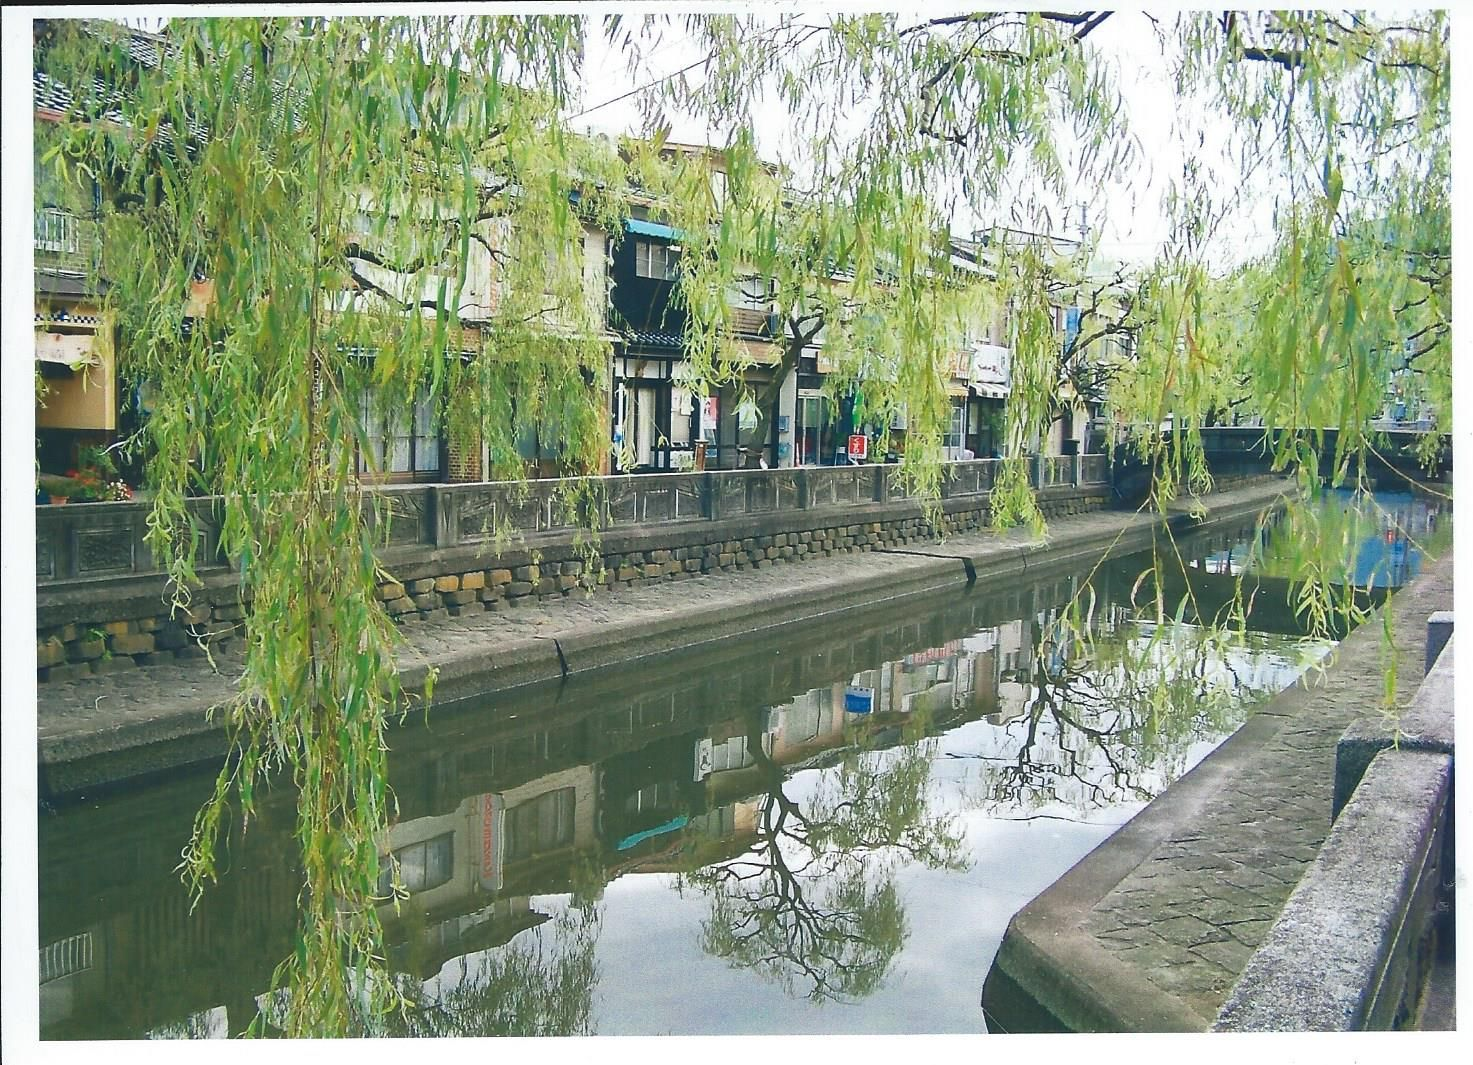 NKphoto: Kinosake with the cobbled streets and canal, a Japanese spa ...